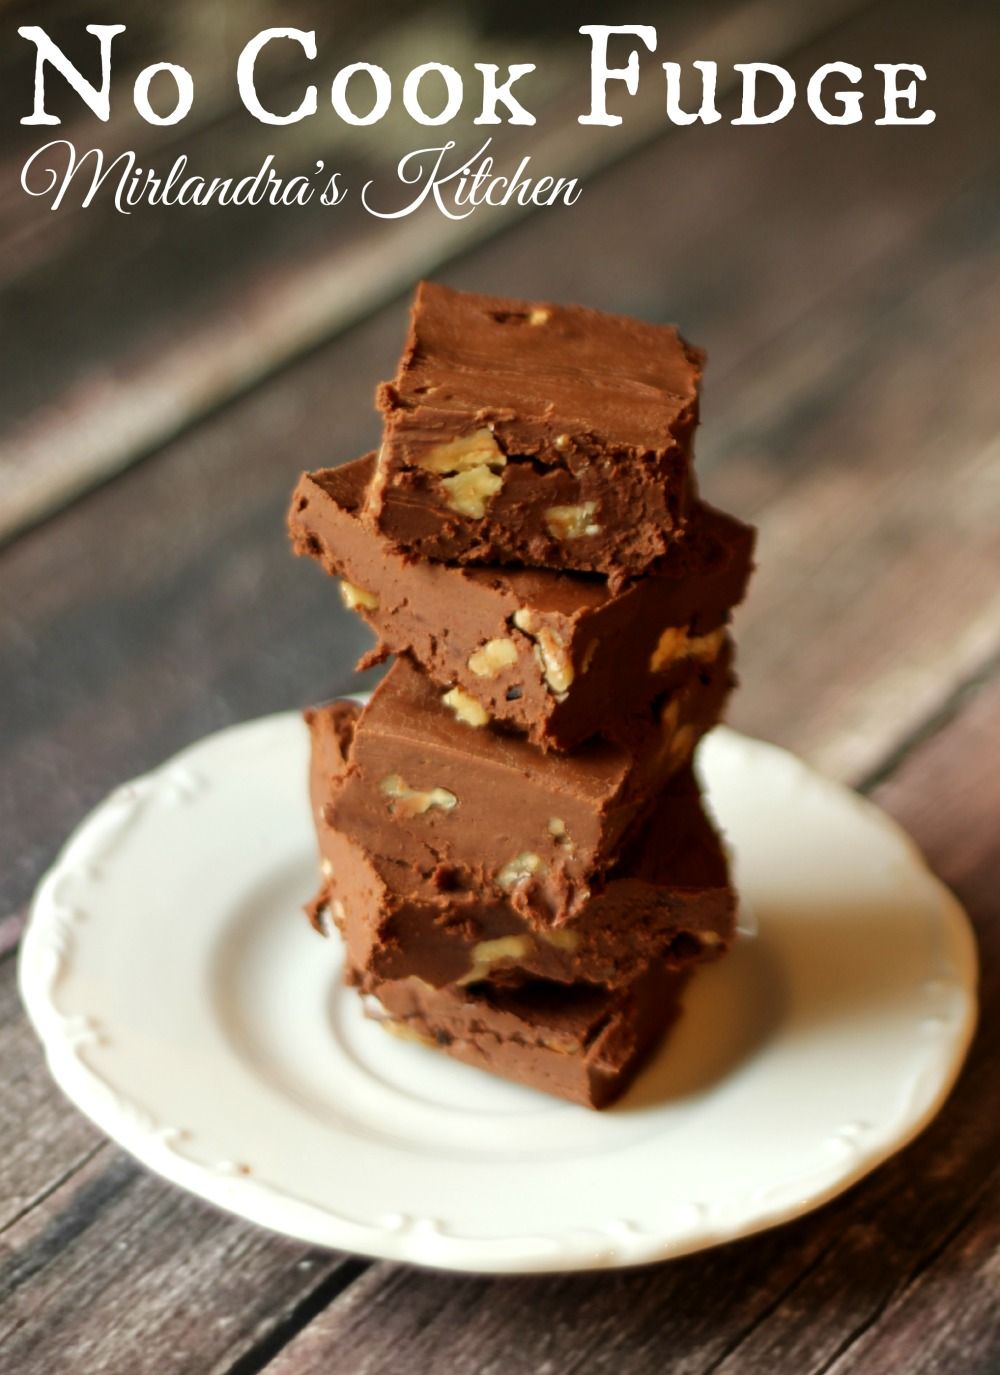 No Cook Fudge All About The Four Categories Of Fudge Recipe